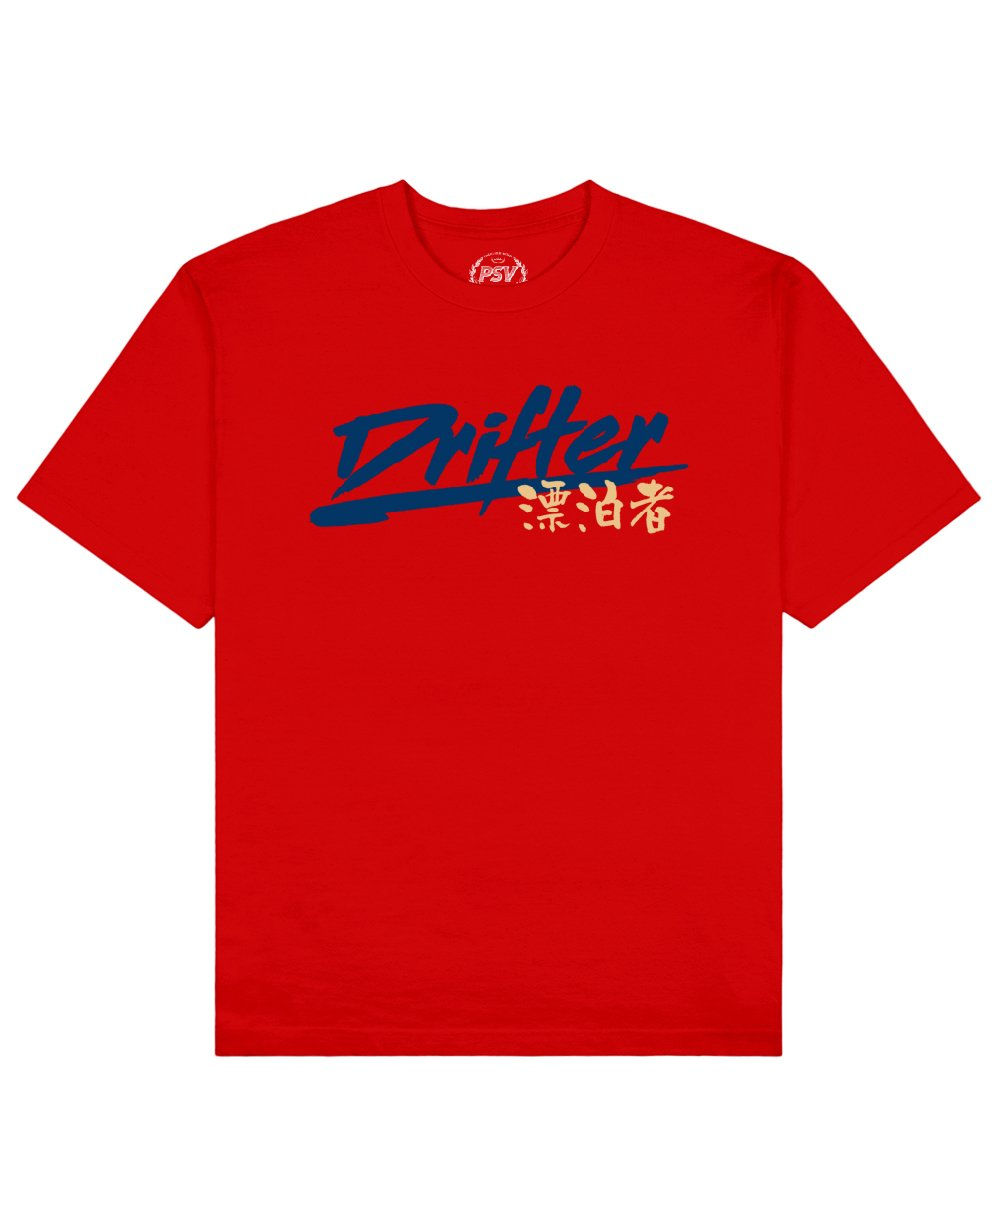 Drifter Print T-Shirt in Red - T-Shirts - PSV - BRANMA